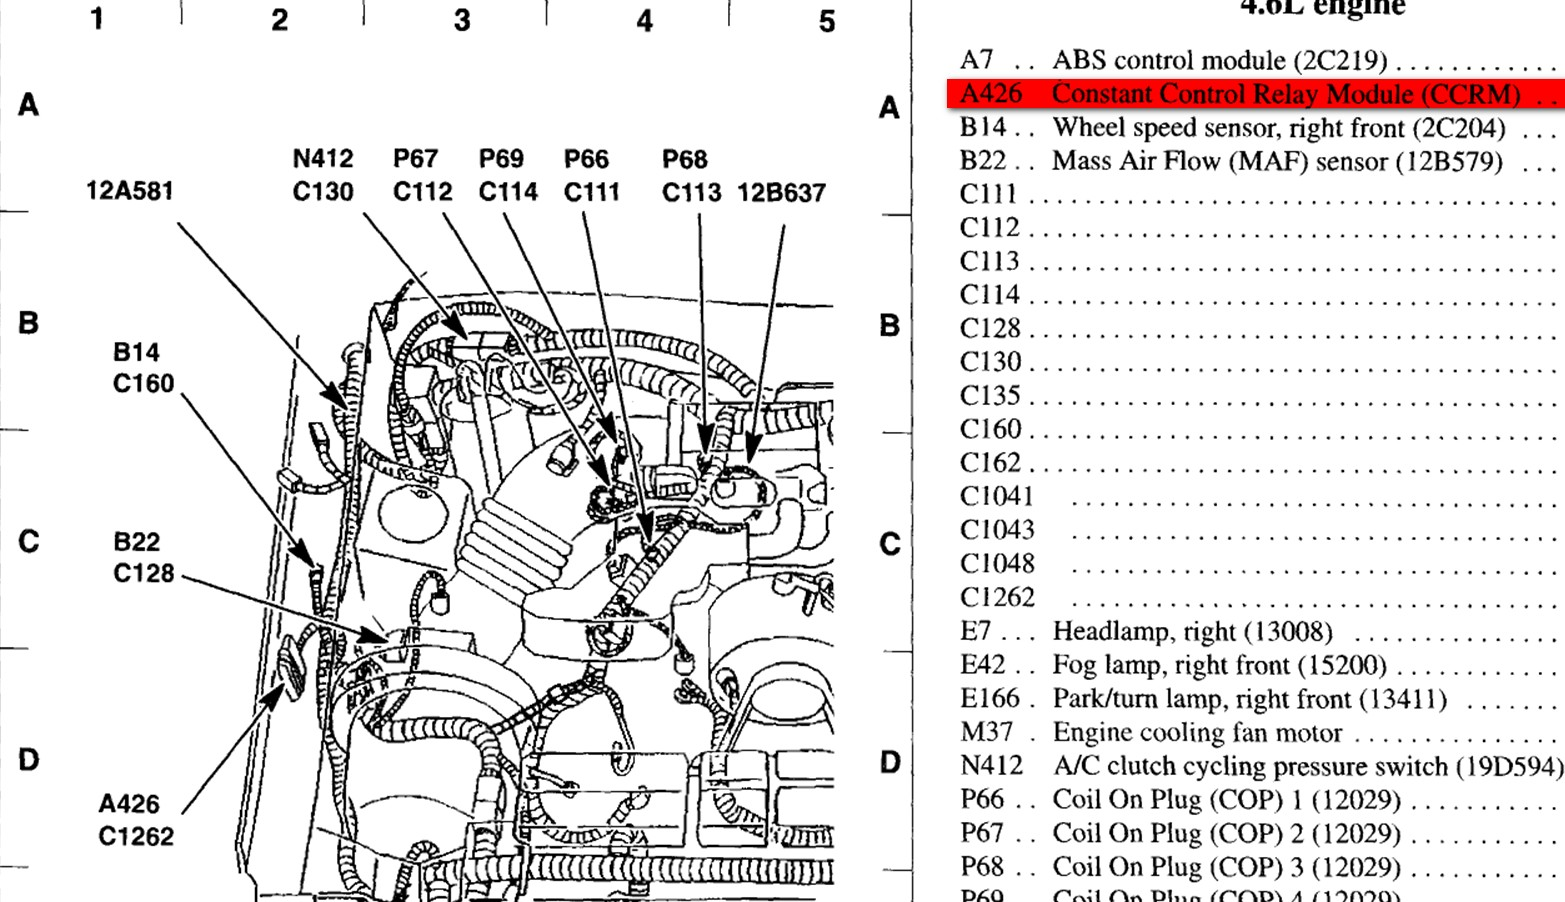 ford mustang fuel pump wiring diagram wiring diagram2002 ford mustang gt fuel pump wiring diagram data wiring diagramford mustang fuel pump wiring diagram